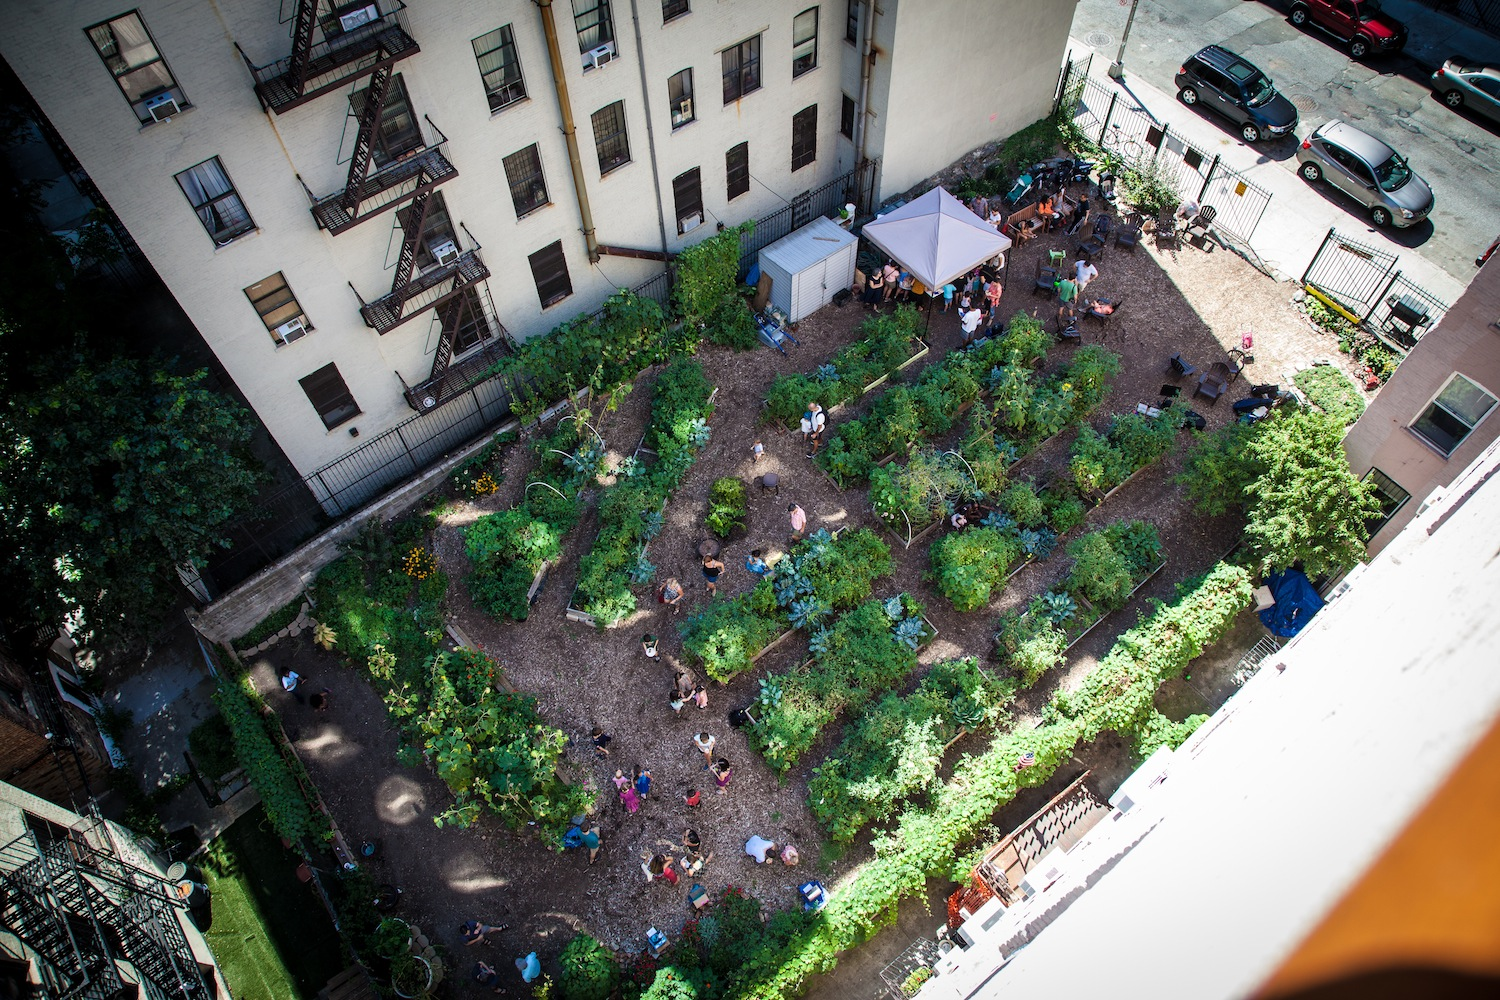 Aerial view of Electric Ladybug Garden in Harlem